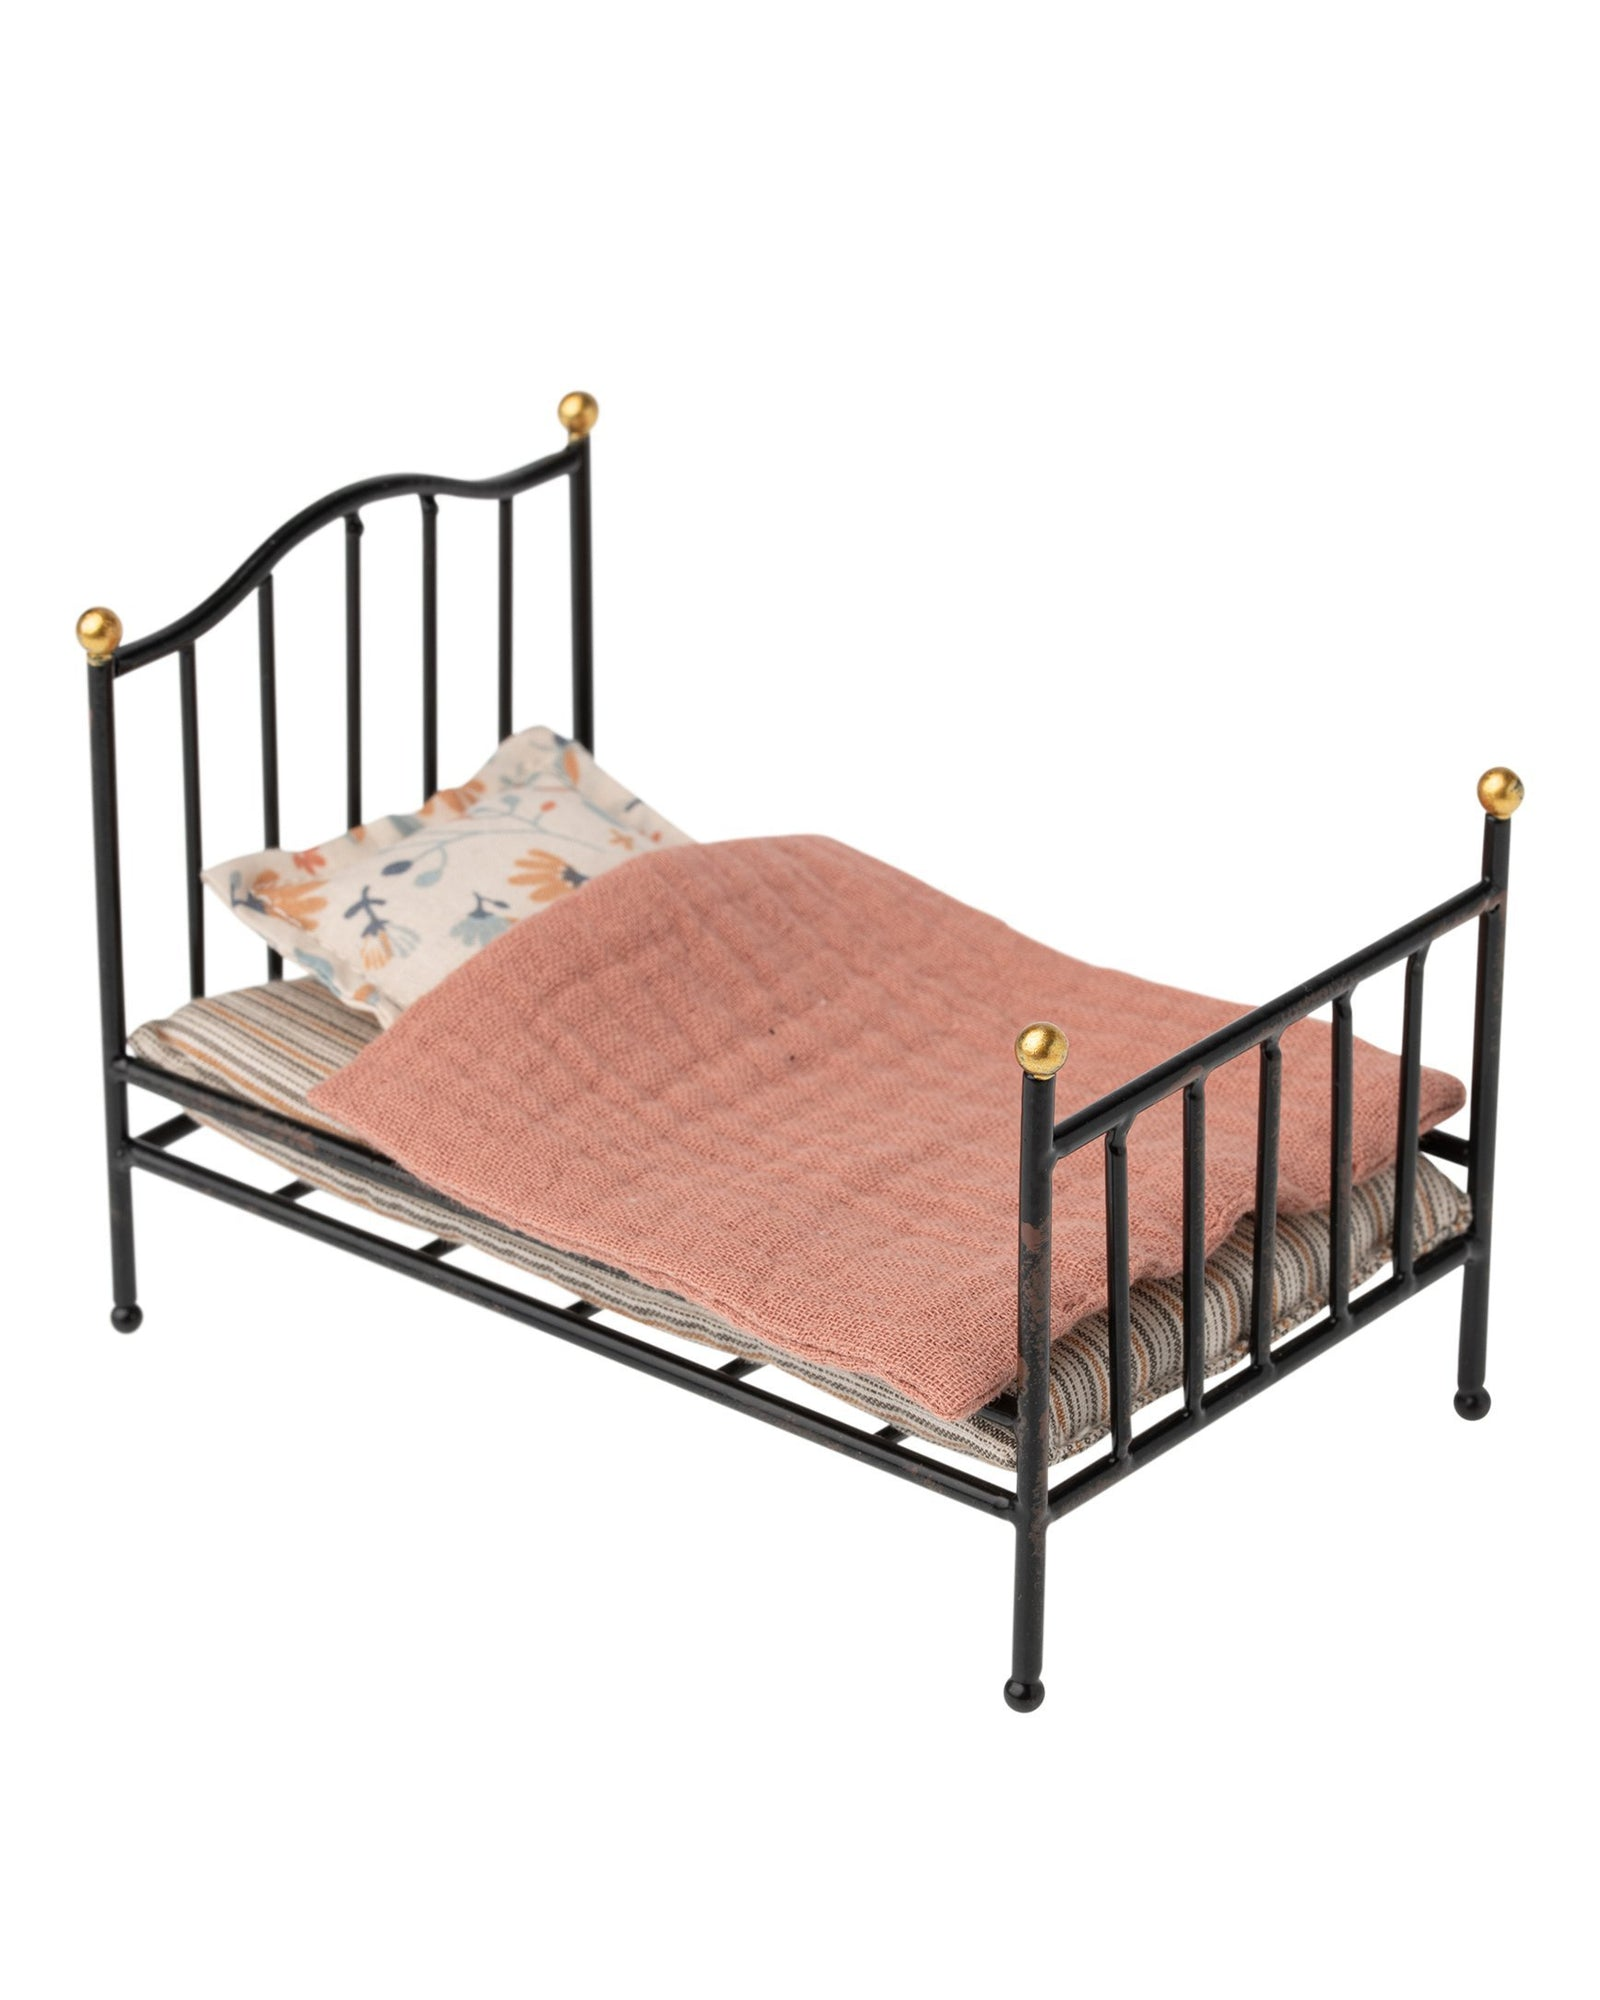 Little maileg play mouse vintage bed in anthracite